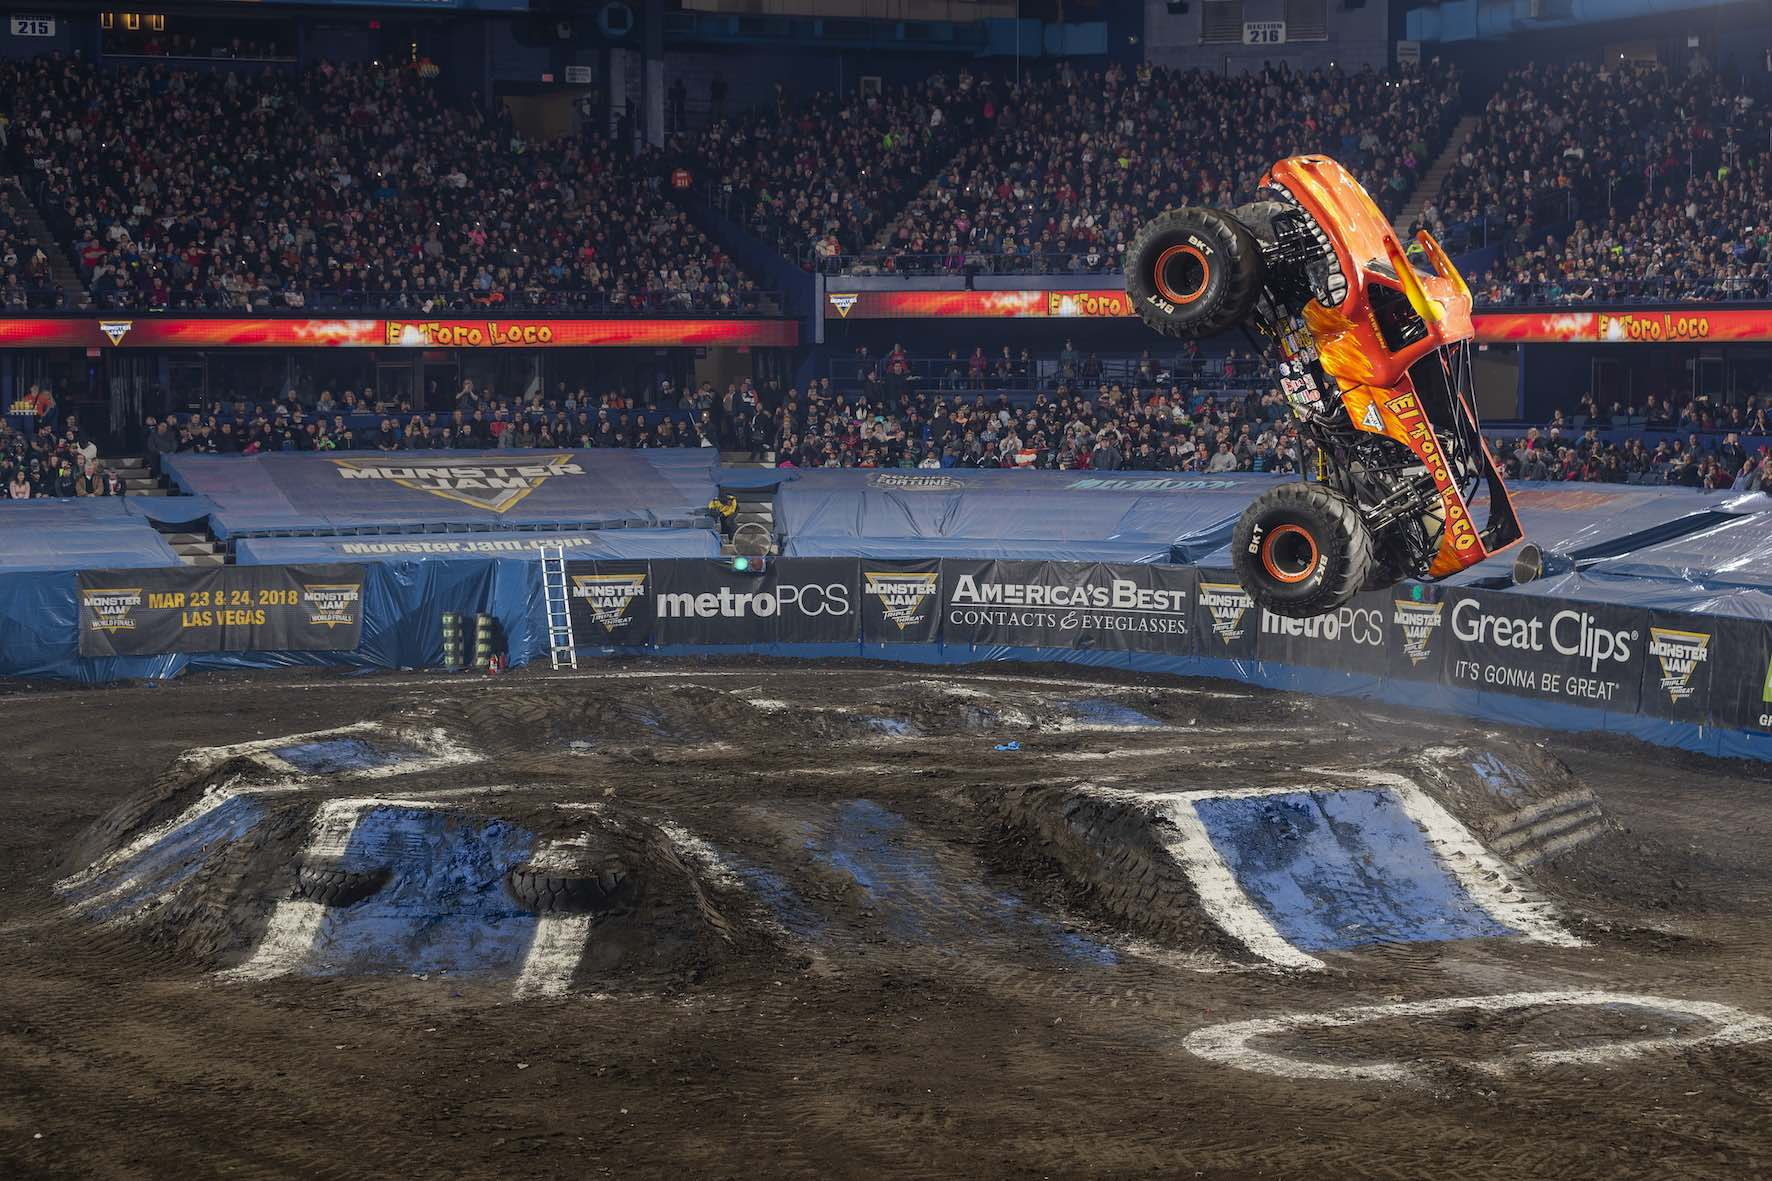 The El Toro Loco Monster Truck is set to perform at Monster Jam in South Africa